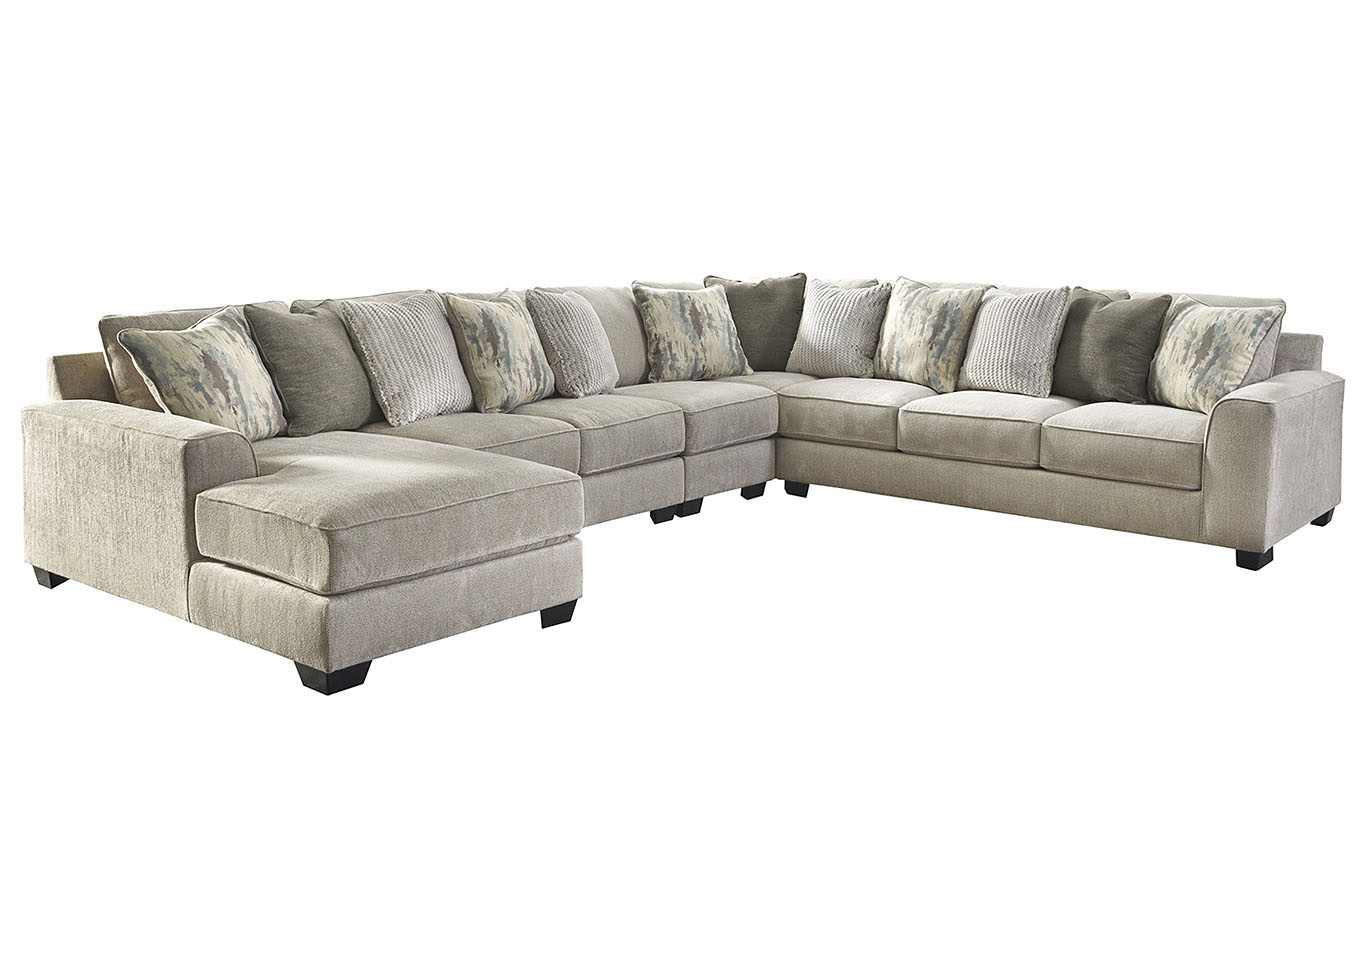 Ardsley 5-Piece Sectional with Chaise,Benchcraft